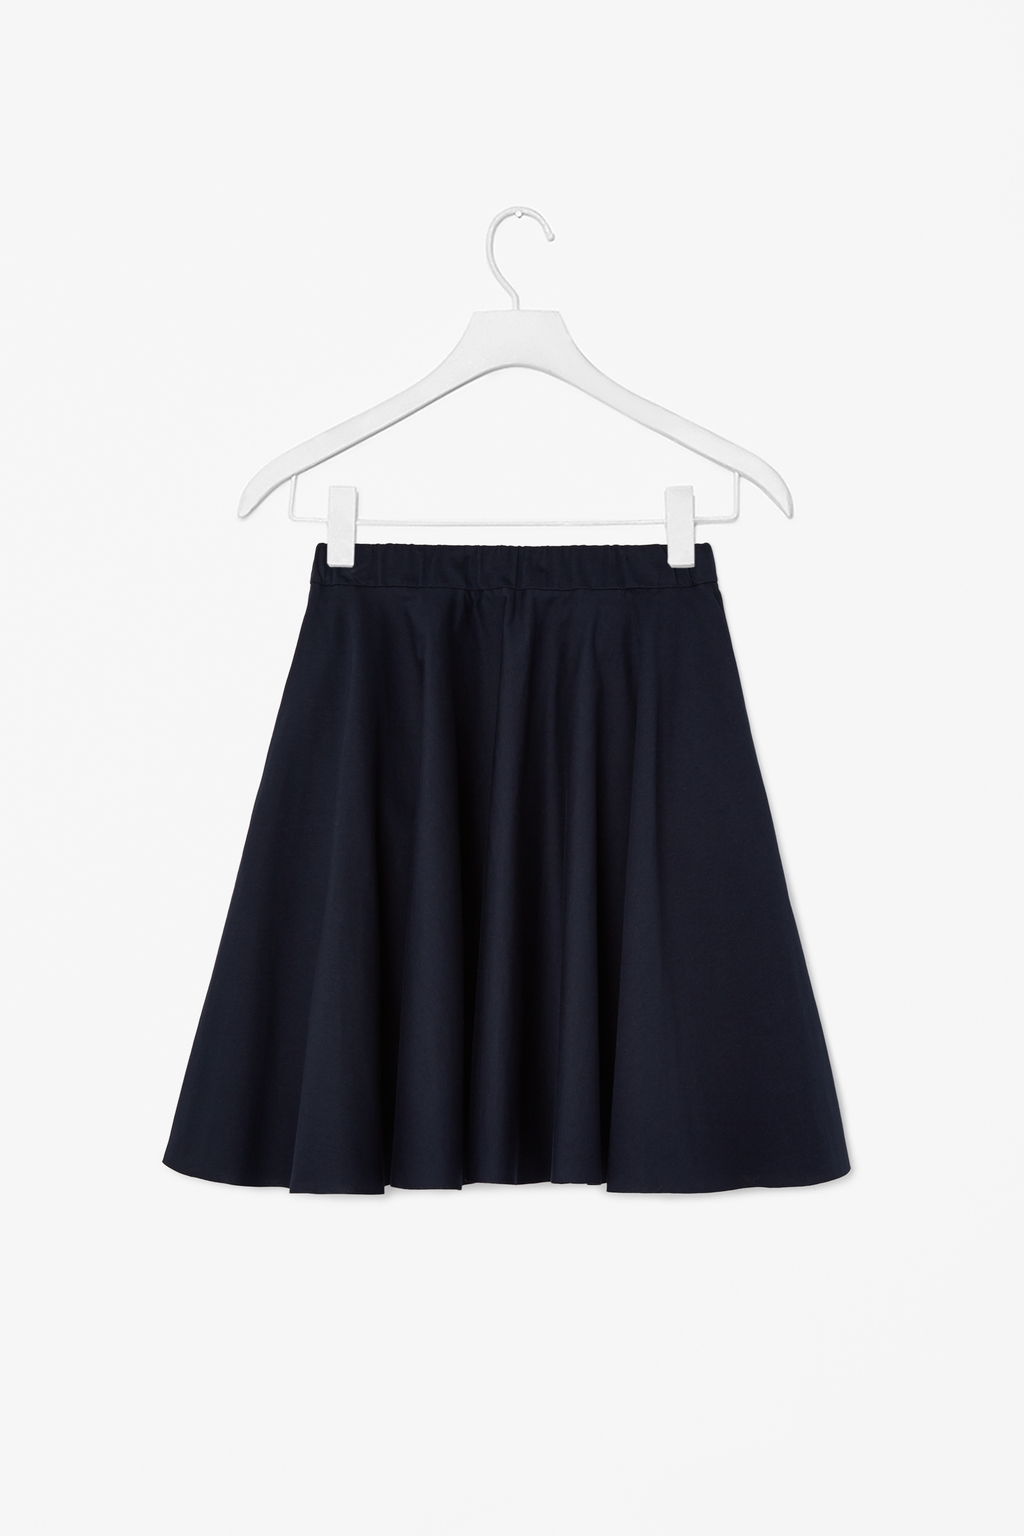 Circle Jersey Skirt - pattern: plain; style: full/prom skirt; fit: loose/voluminous; waist: mid/regular rise; predominant colour: navy; occasions: casual, creative work; length: just above the knee; fibres: cotton - 100%; pattern type: fabric; texture group: jersey - stretchy/drapey; season: s/s 2014